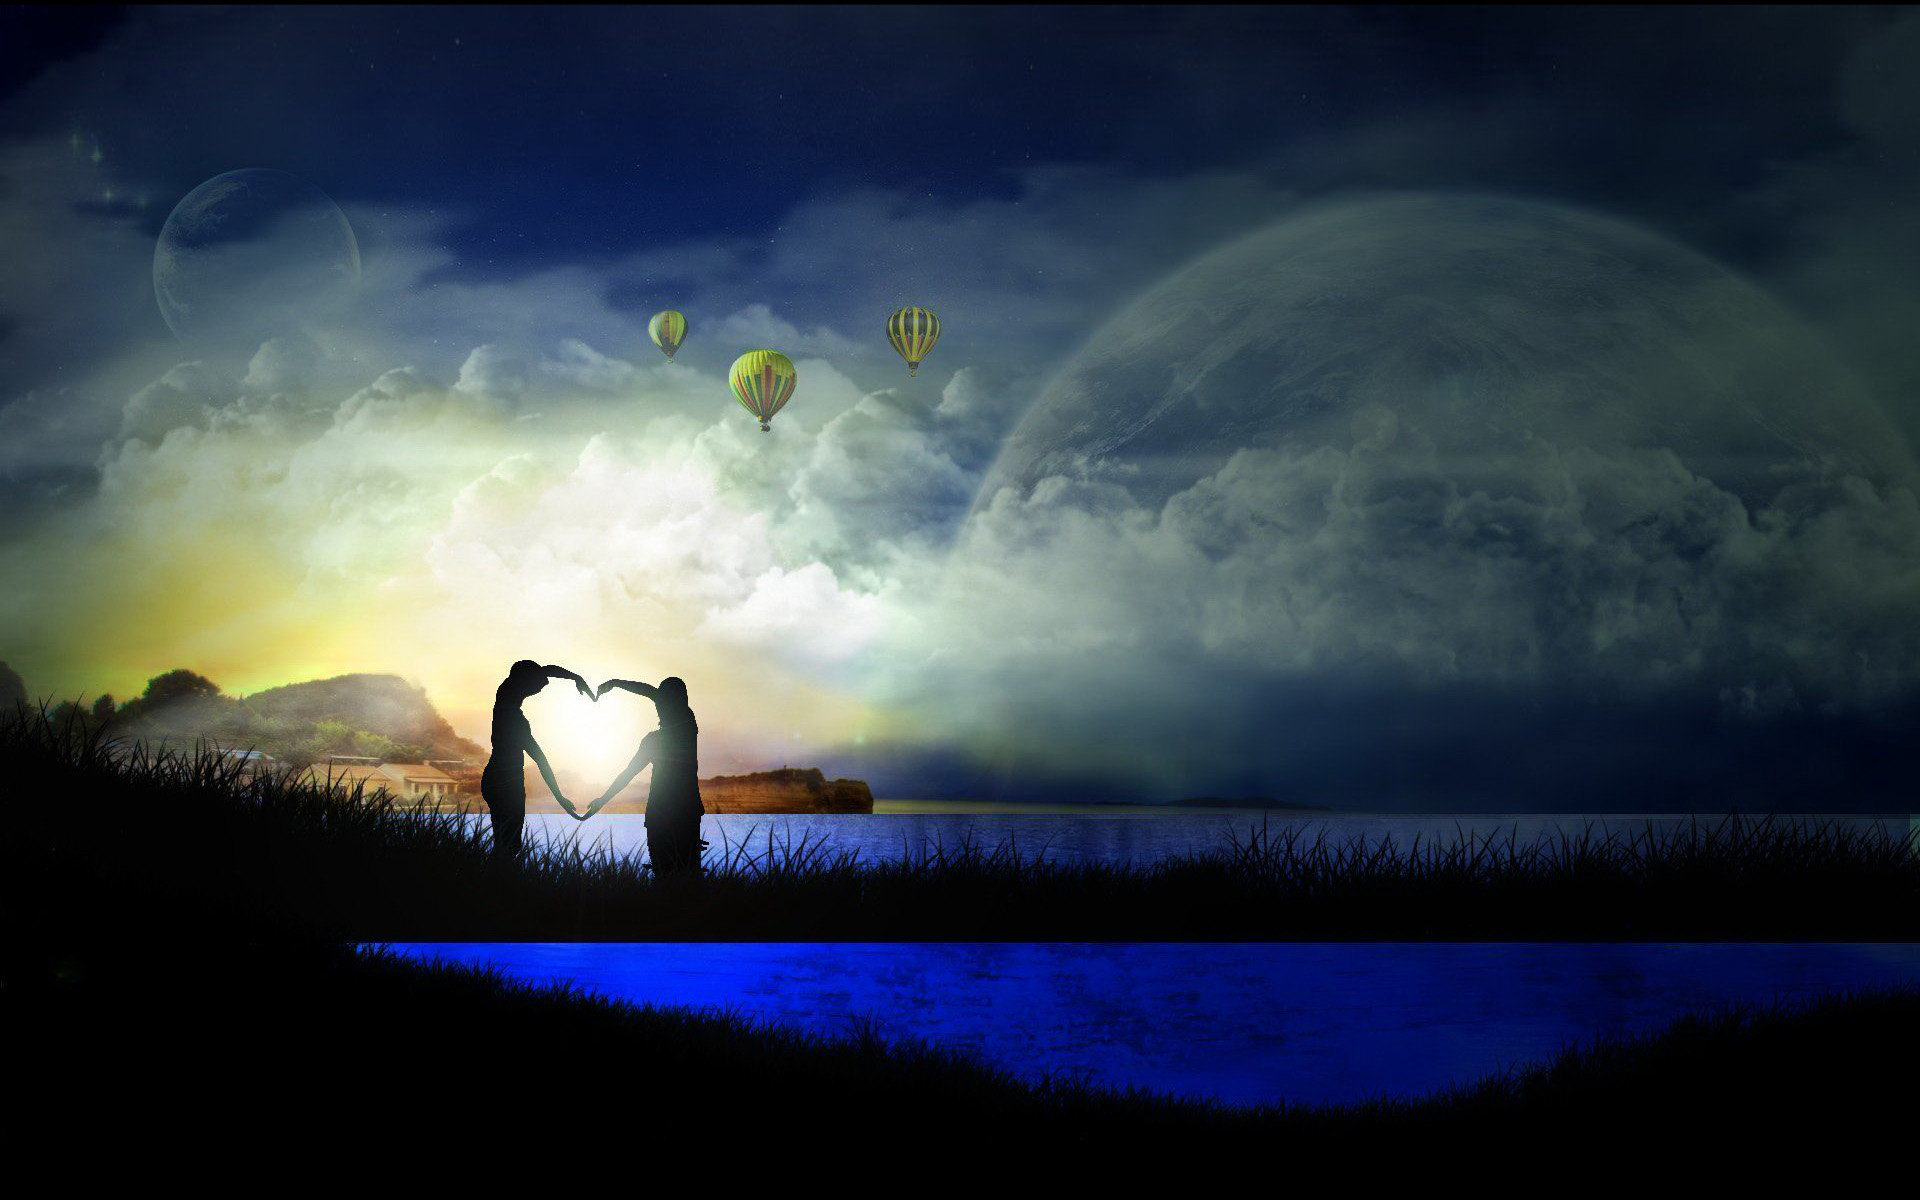 Best Love Wallpaper For Laptop : Romantic Wallpapers Best Wallpapers